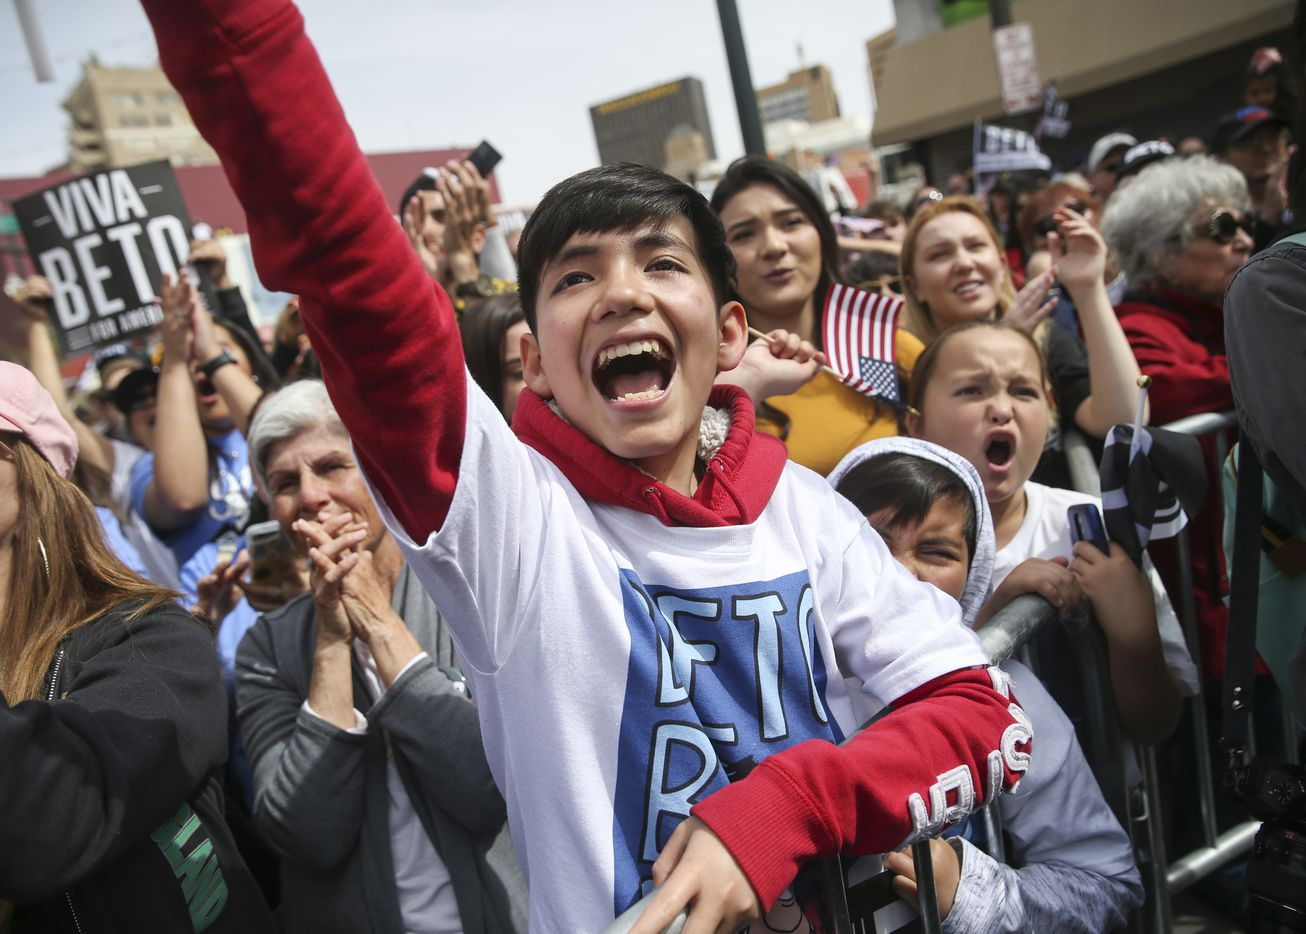 Fans cheer as Beto O'Rourke speaks at his presidential campaign kickoff rally in downtown El Paso on Saturday, March 30, 2019.